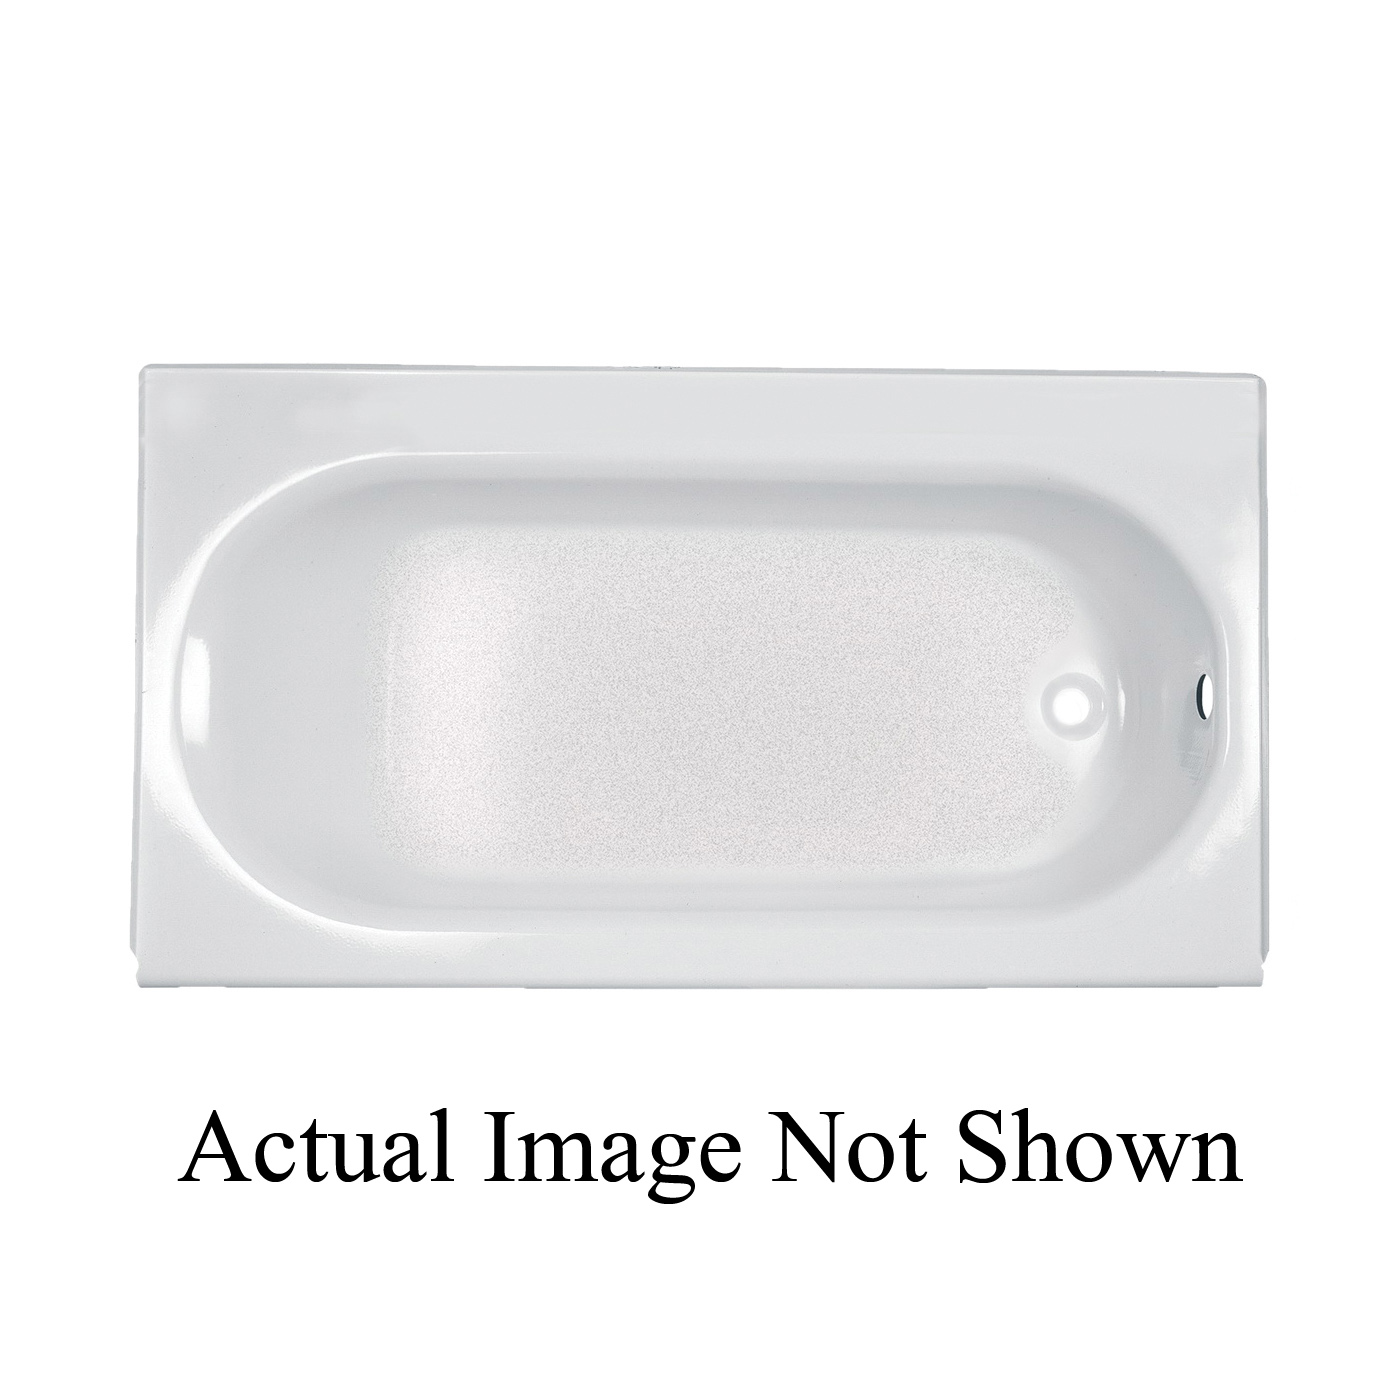 American Standard 2395.202.020 Princeton™ Recessed Bathtub With Luxury  Ledge, Rectangular, 60